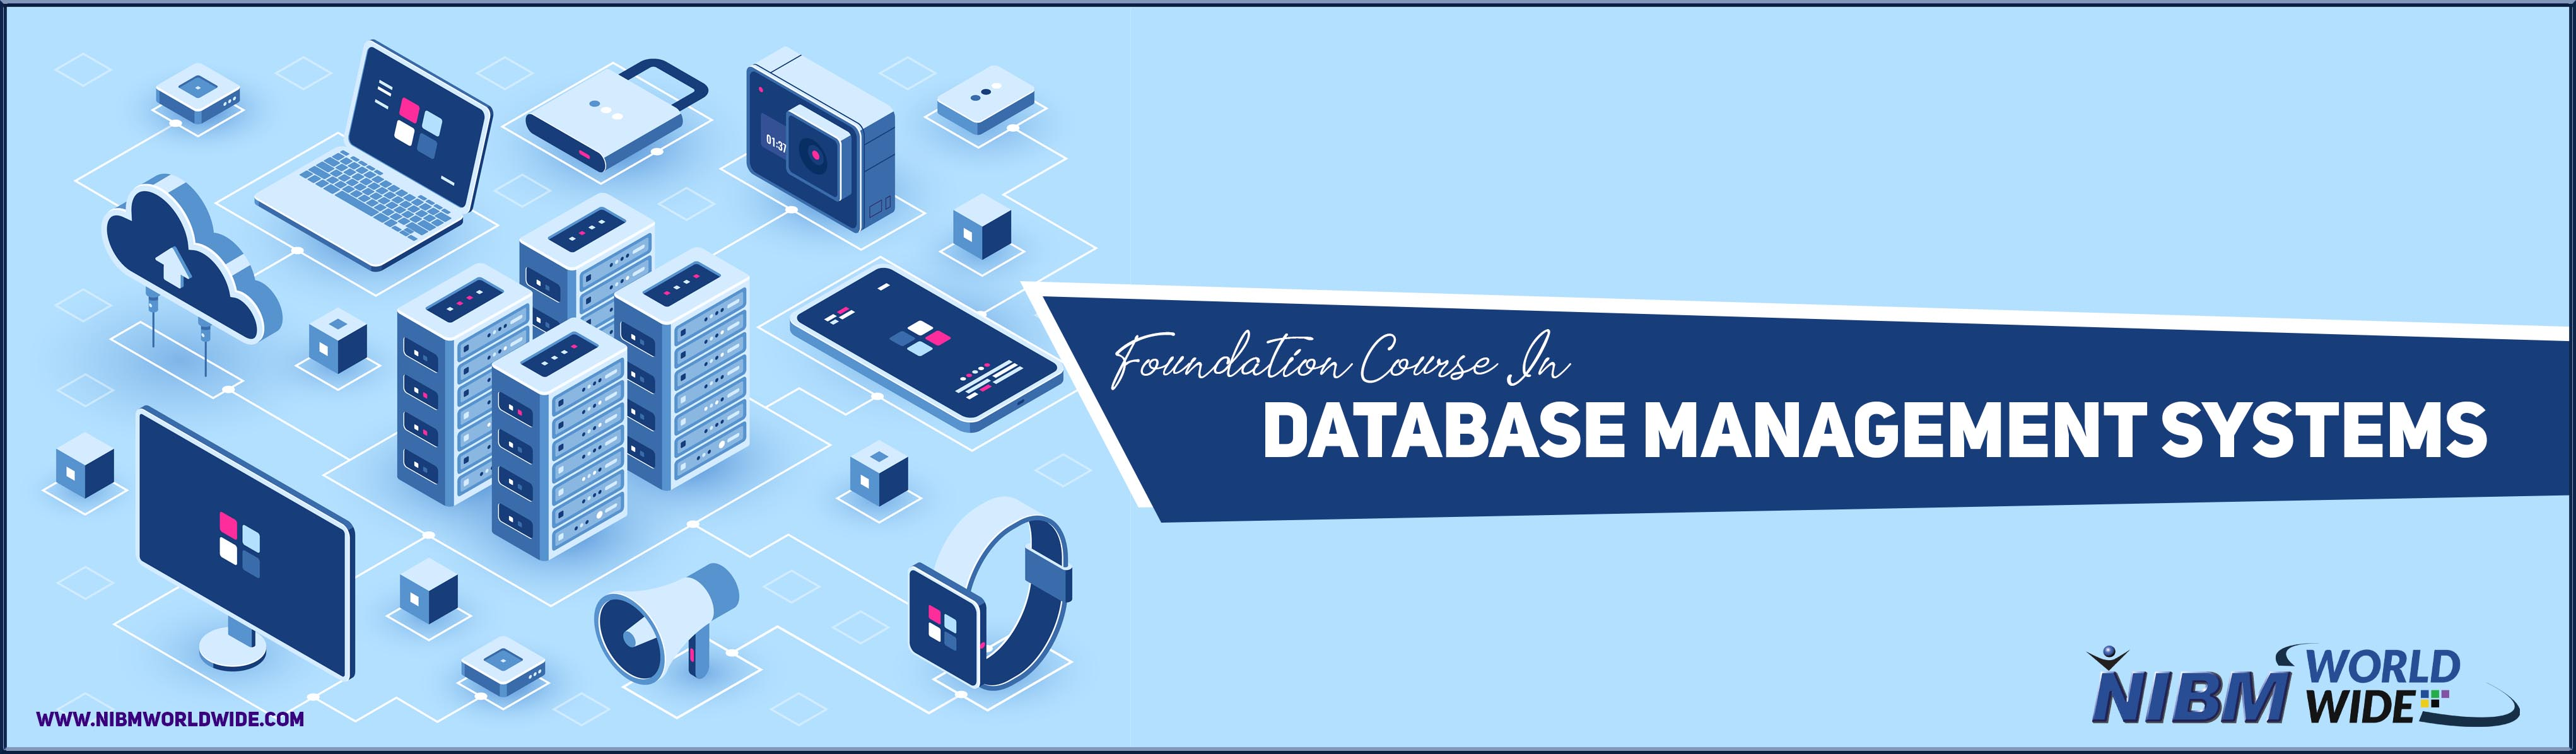 Foundation Course in<br/><br/>Database Management System